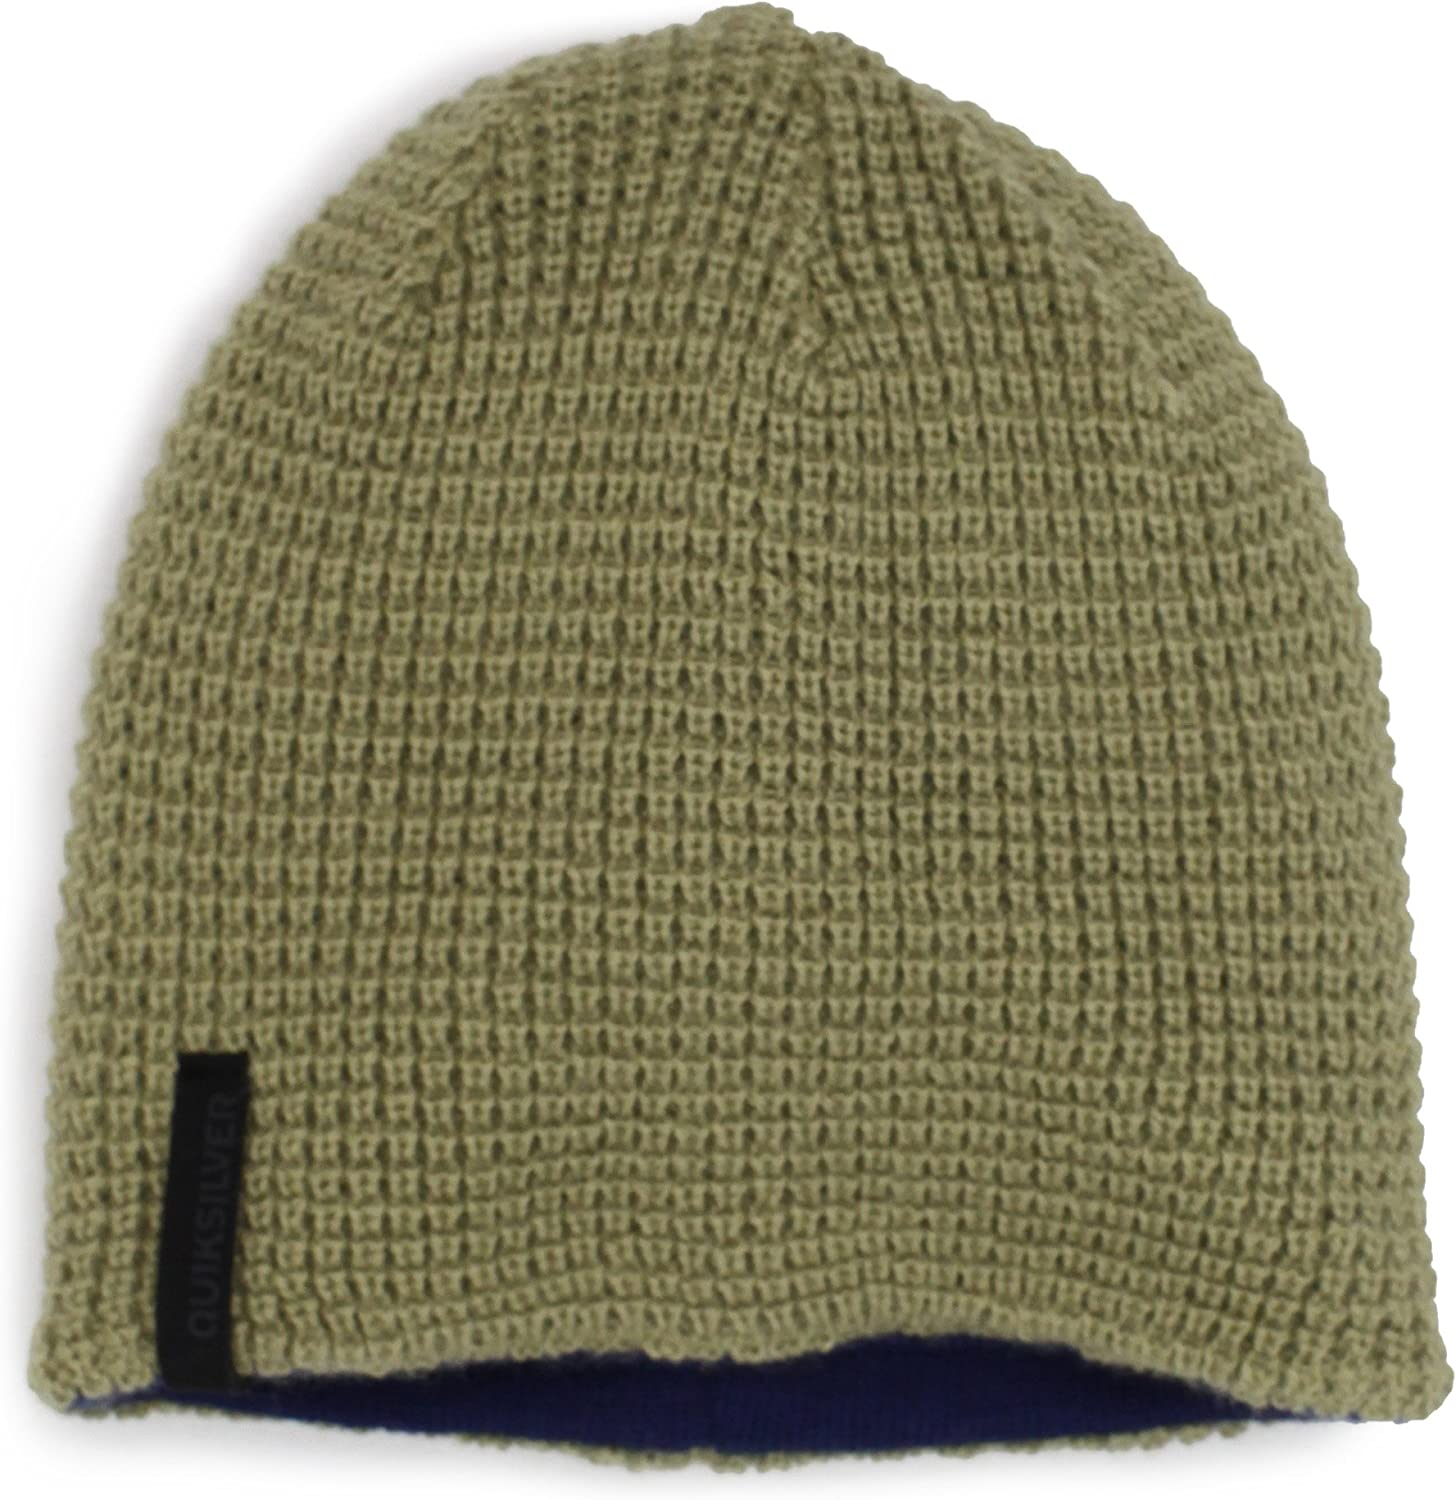 Quiksilver Baby Boys' Crumbs Beanie Skull Cap Limited Special Animer and price revision Price Hat